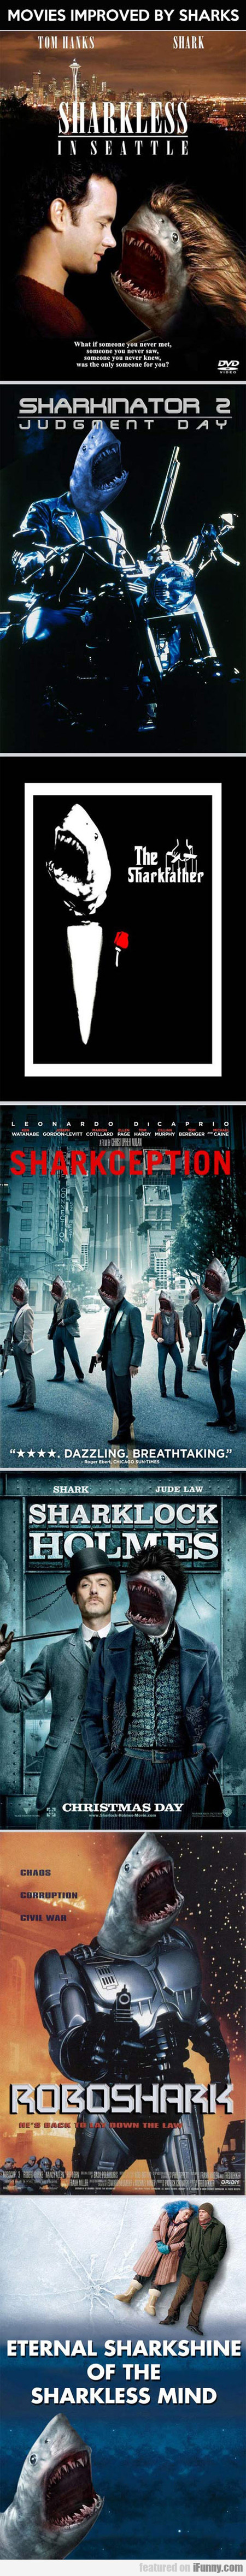 Movies Improved By Sharks - Part 2